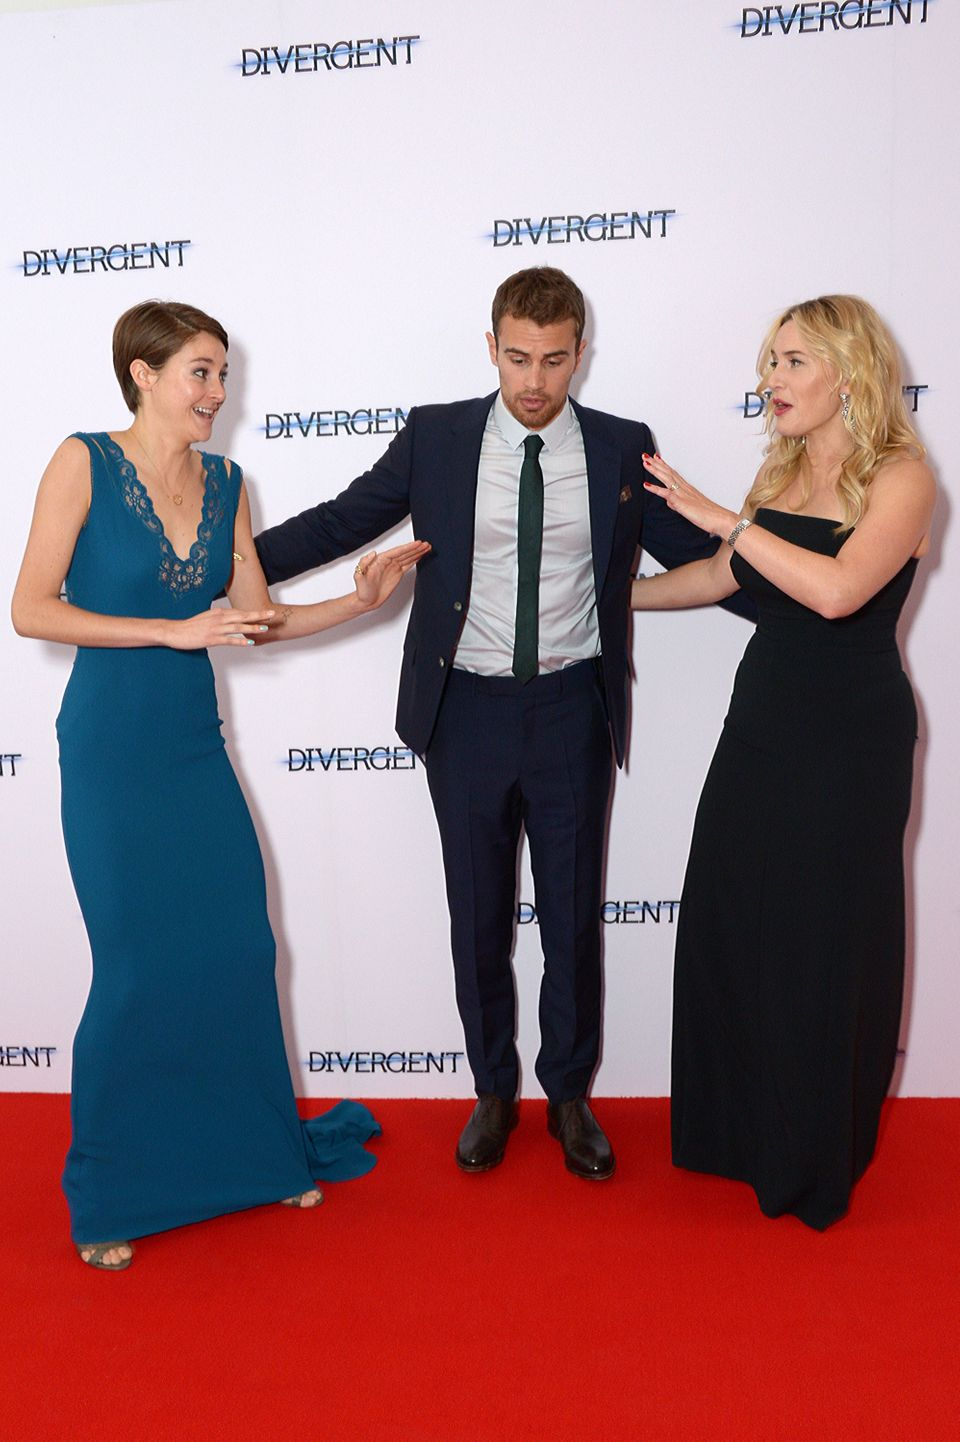 Shailene Woodley, Theo James and Kate Winslet pose for photographers at the European film premiere of Divergent in Leicester